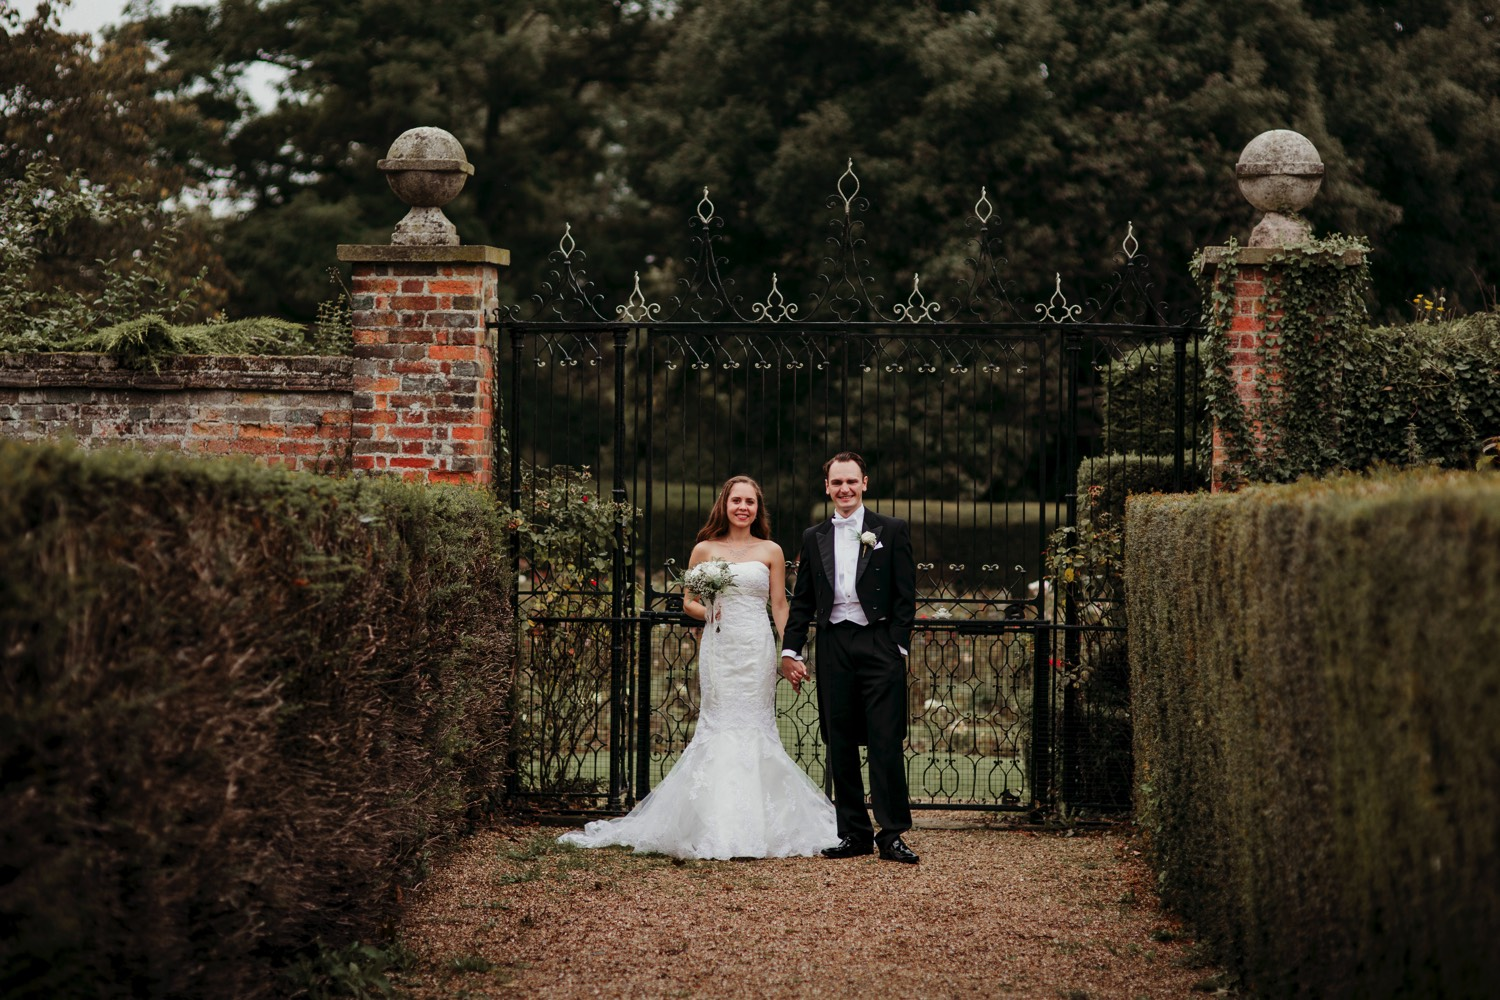 Offley-Place-Country-House-Hotel-Hitchin-wedding-JJ30.jpg